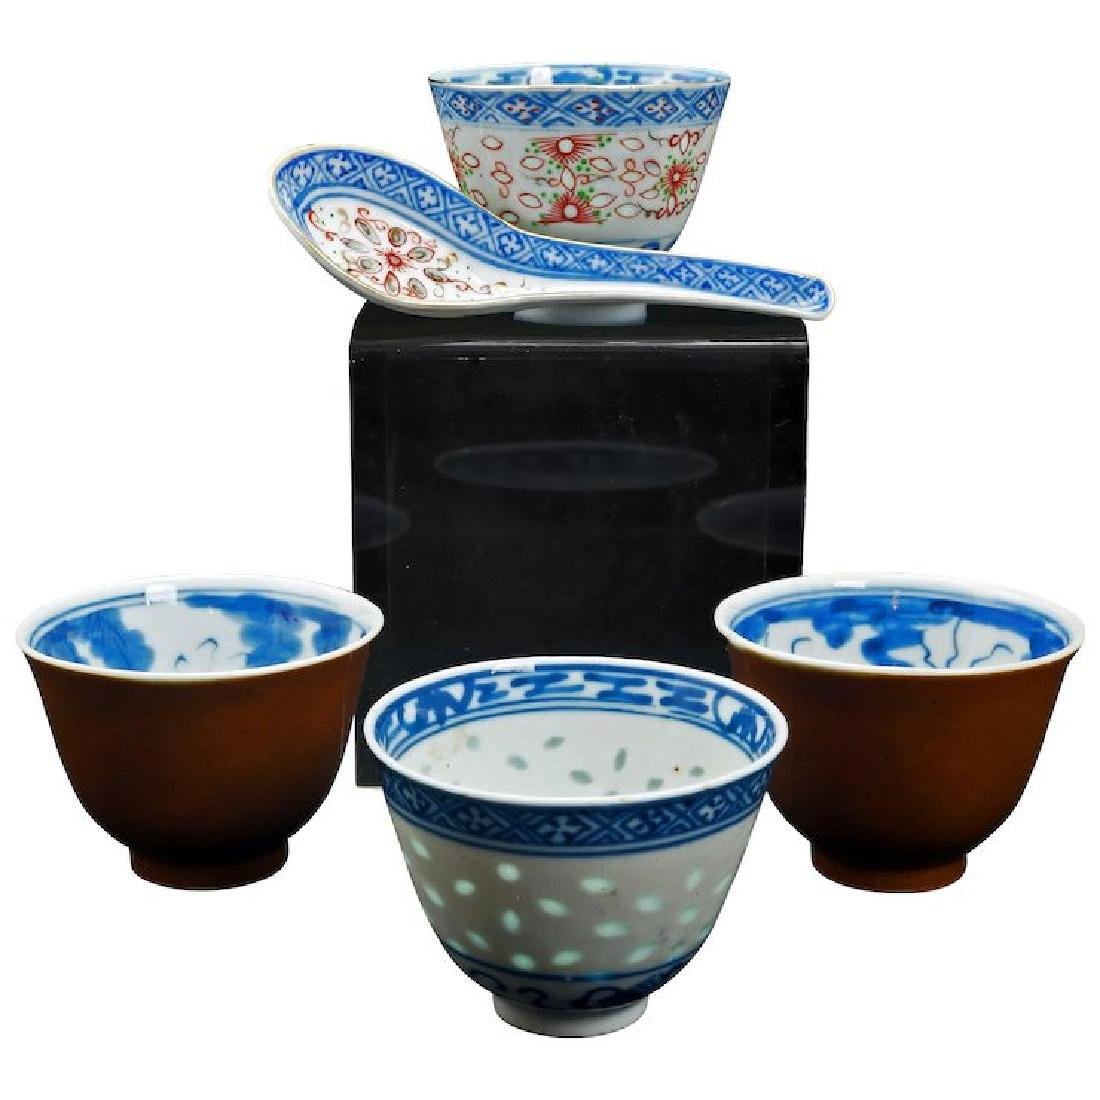 Grouping of four Chinese porcelain teacups and spoon